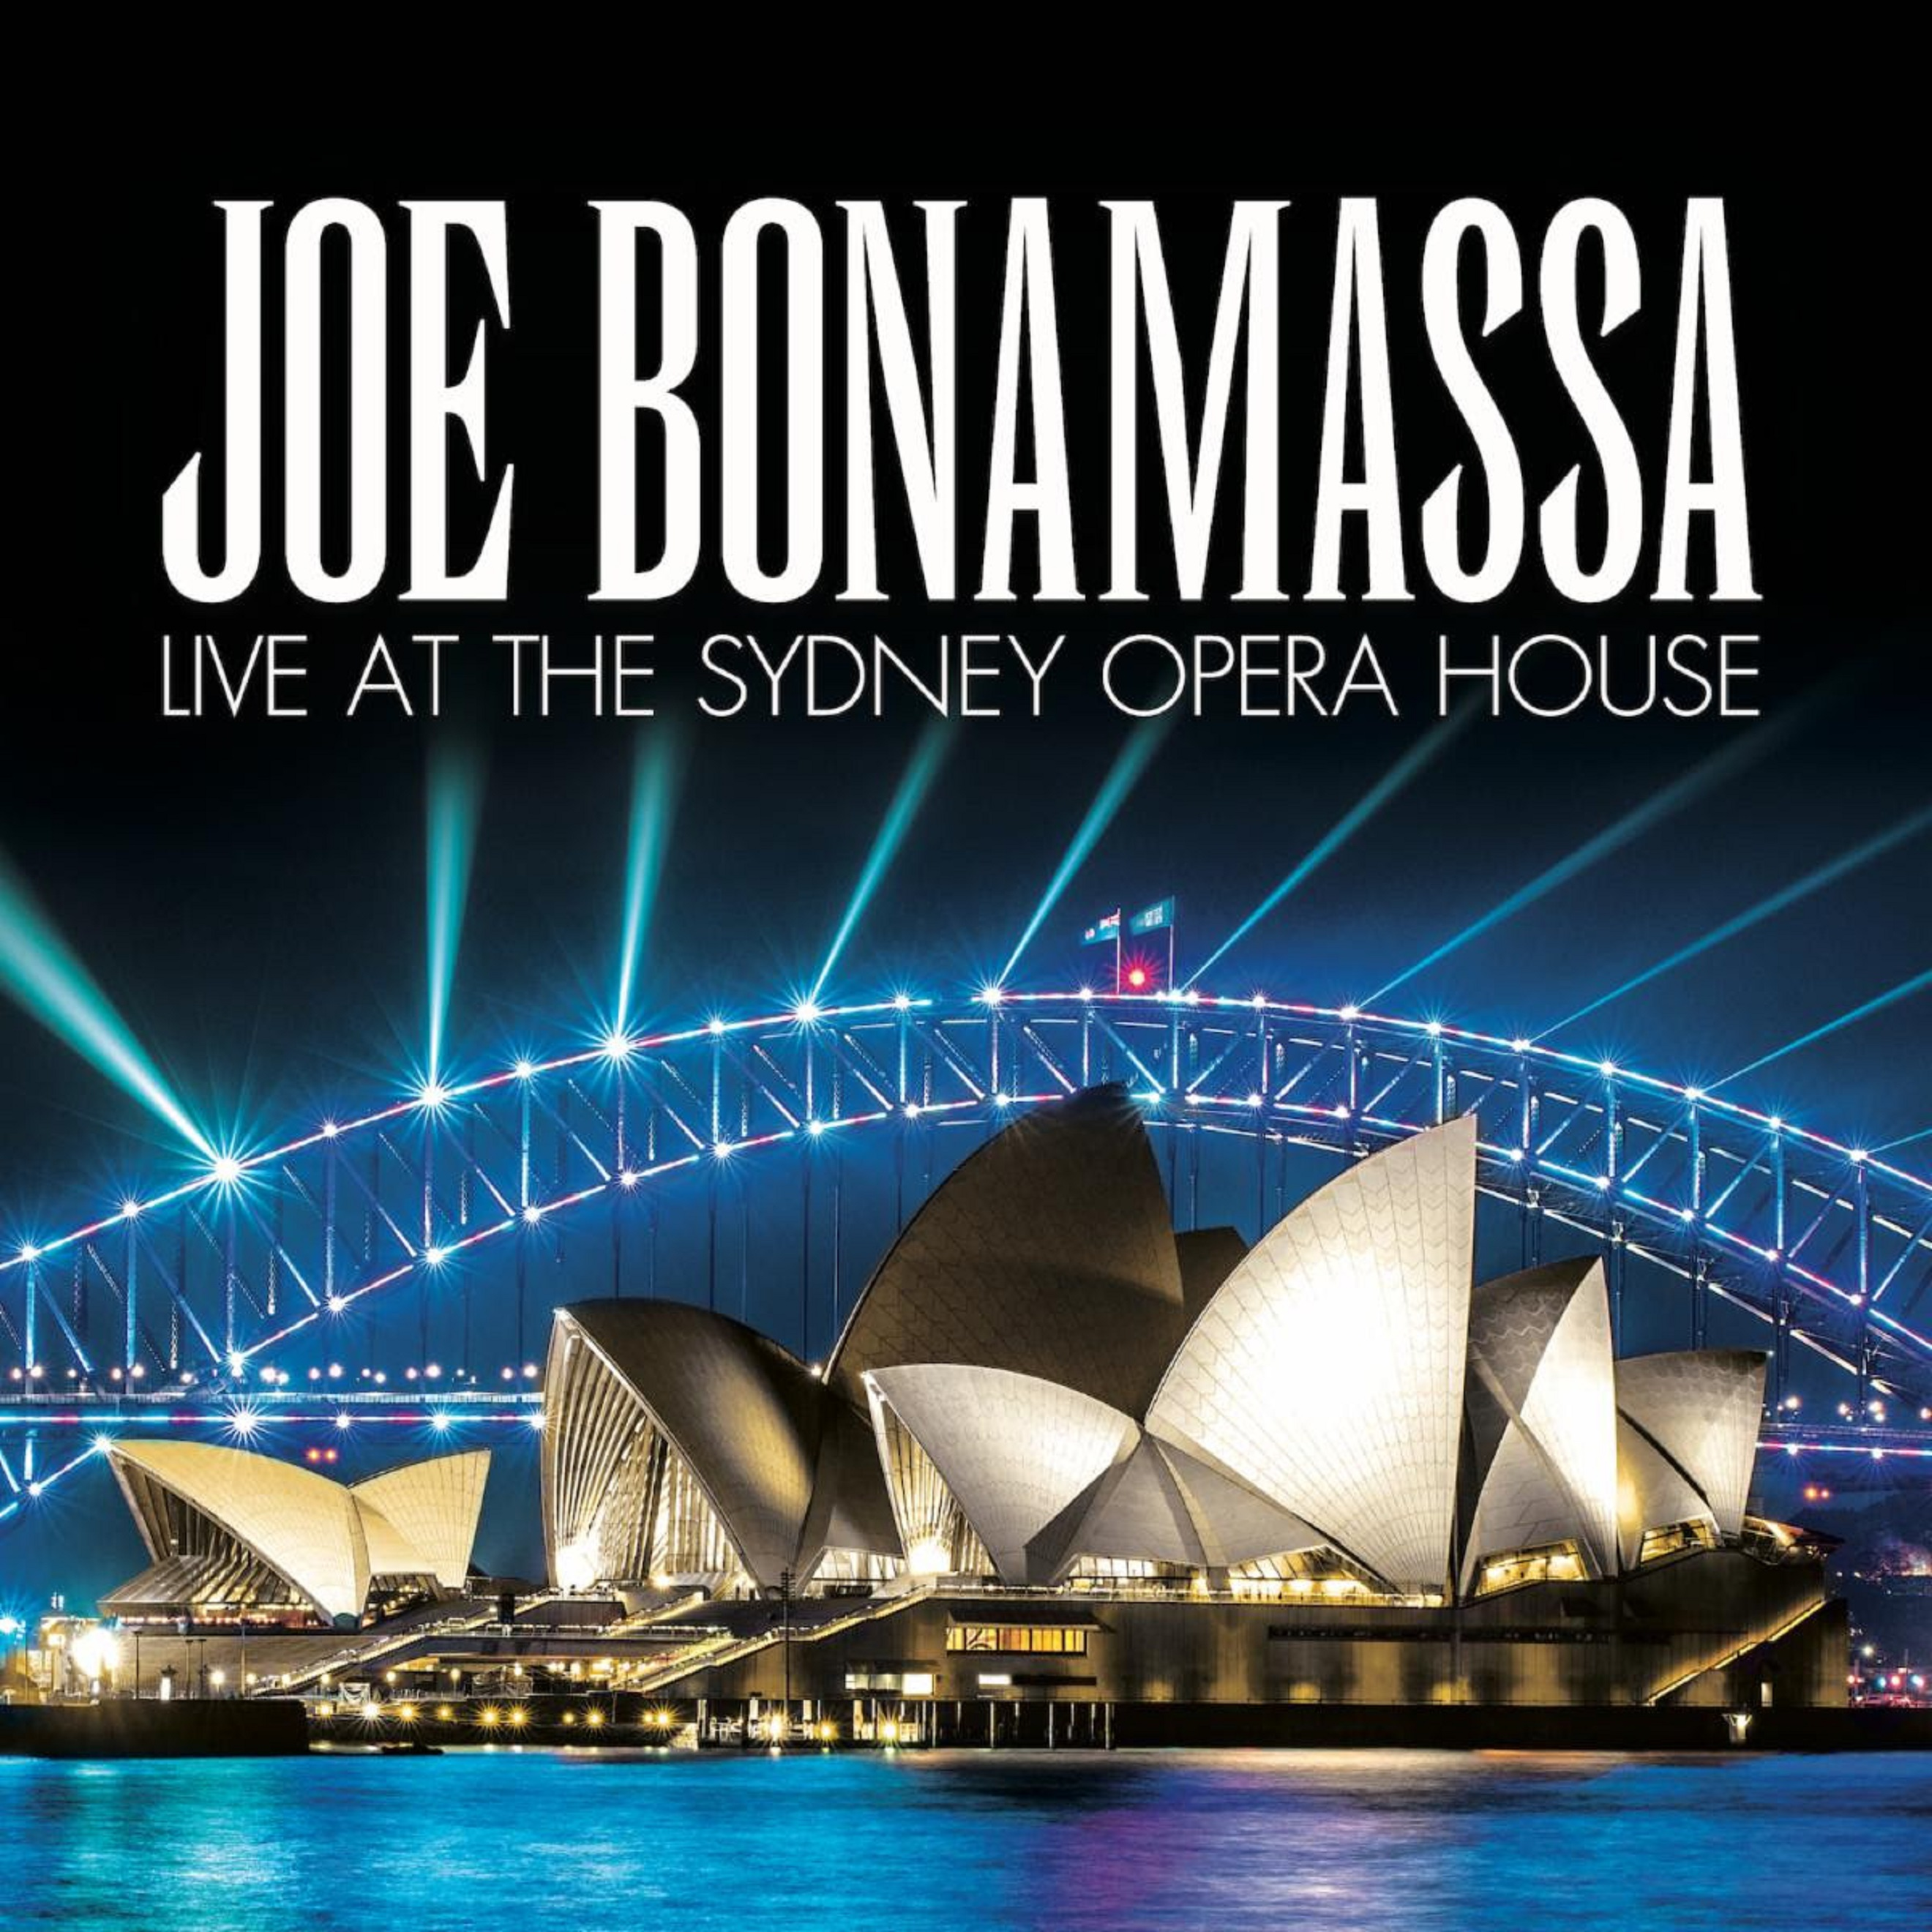 Joe Bonamassa receives 22nd #1 with 'Live At The Sydney Opera House' | On tour now!